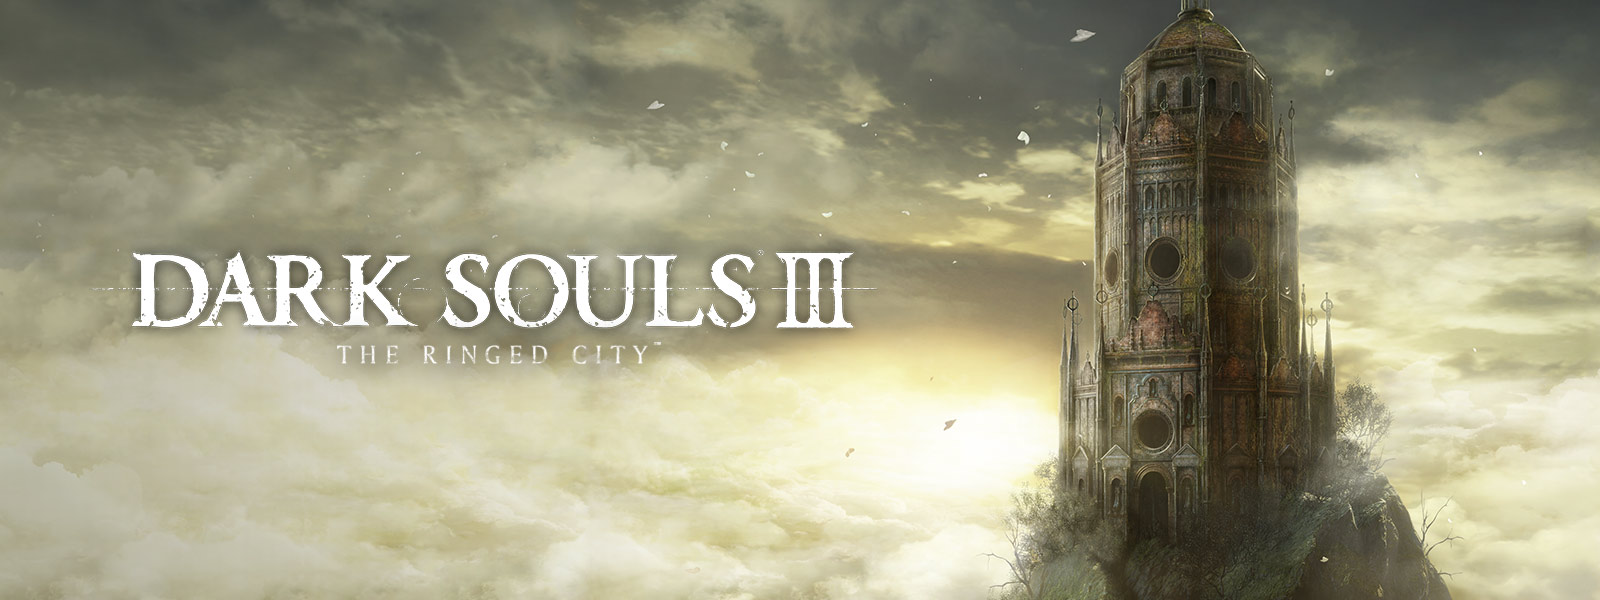 Dark Souls 3: The Ringed City DLC